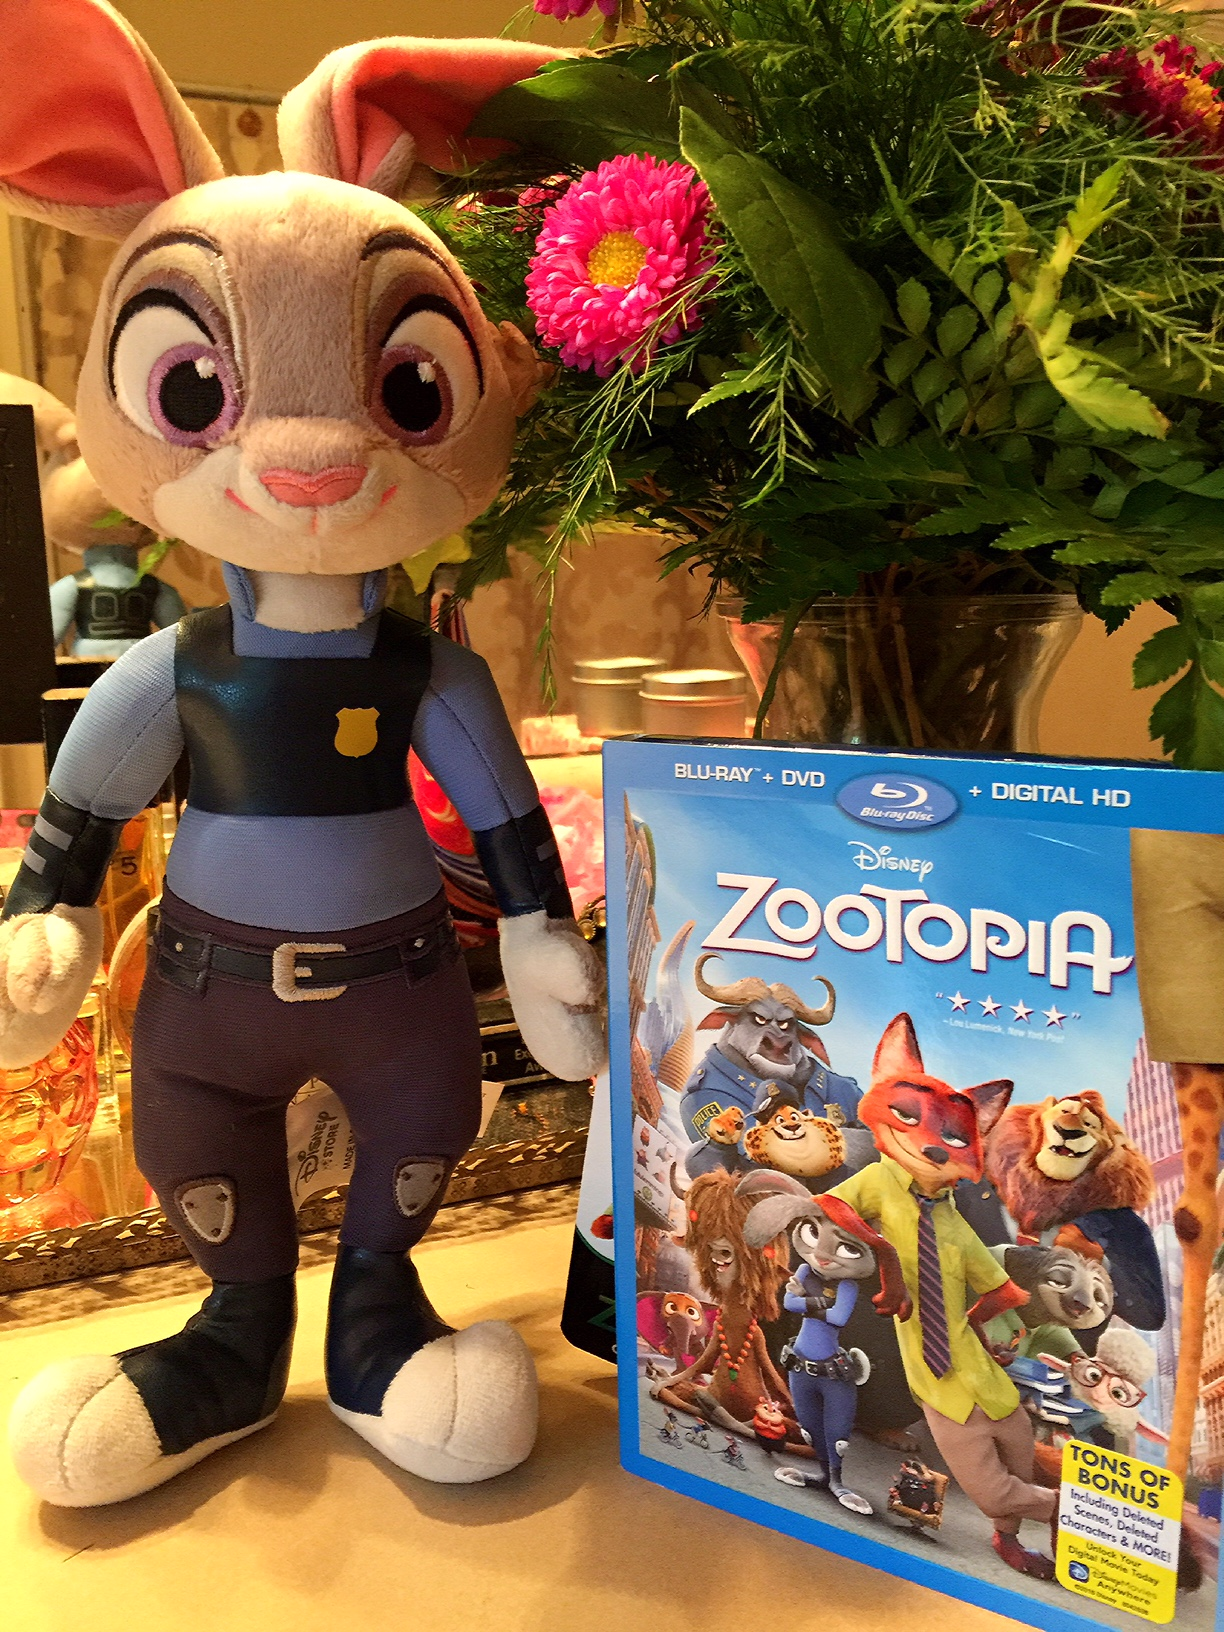 'Zootopia' The Movie Available NOW On BLU-RAY